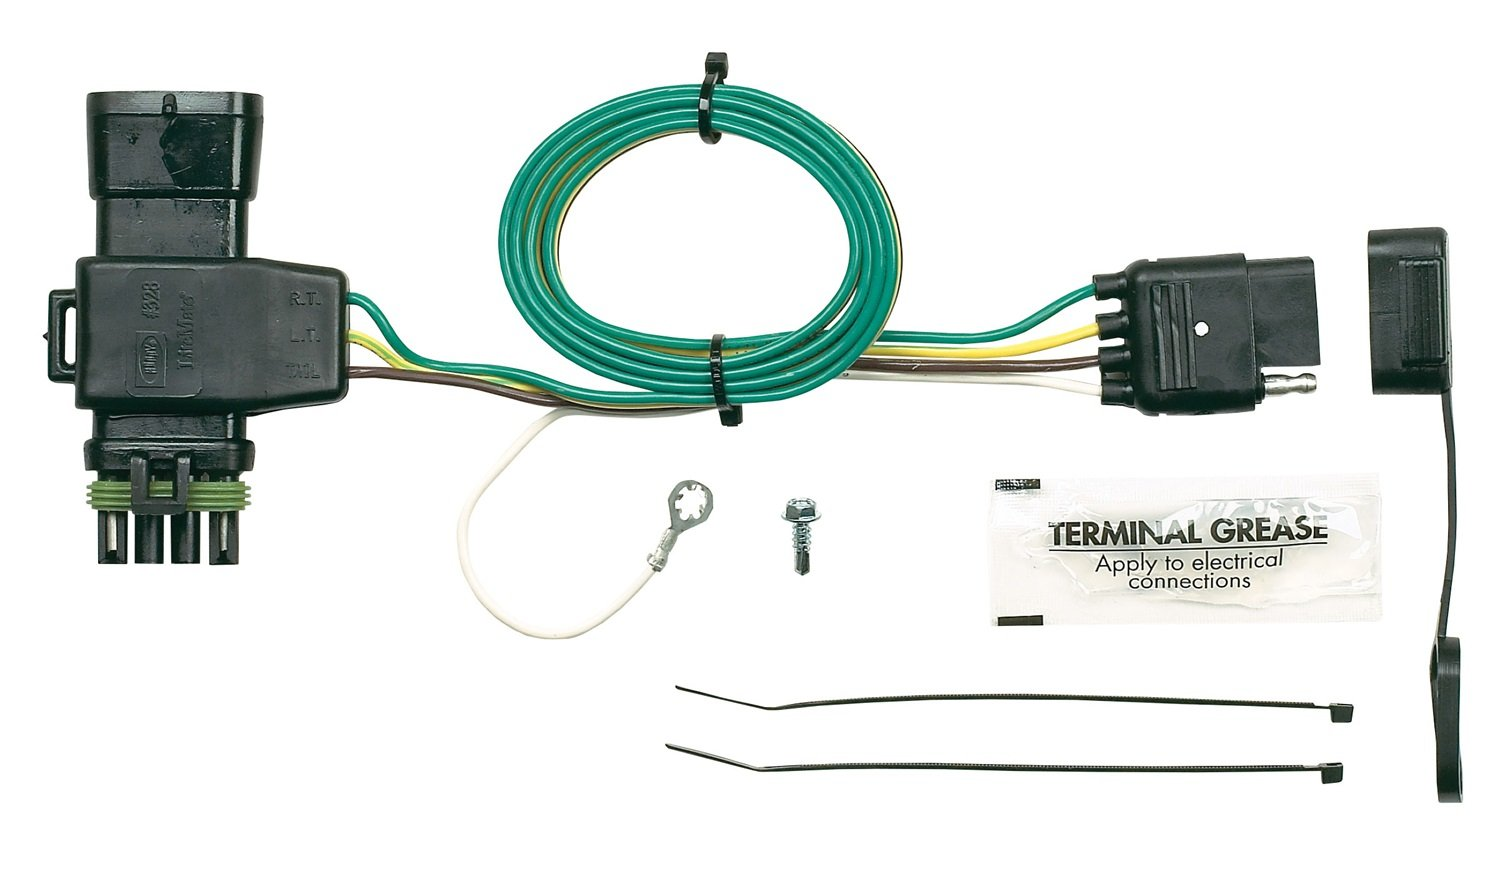 Amazon.com: Hopkins 41125 Plug-In Simple Vehicle Wiring Kit ...